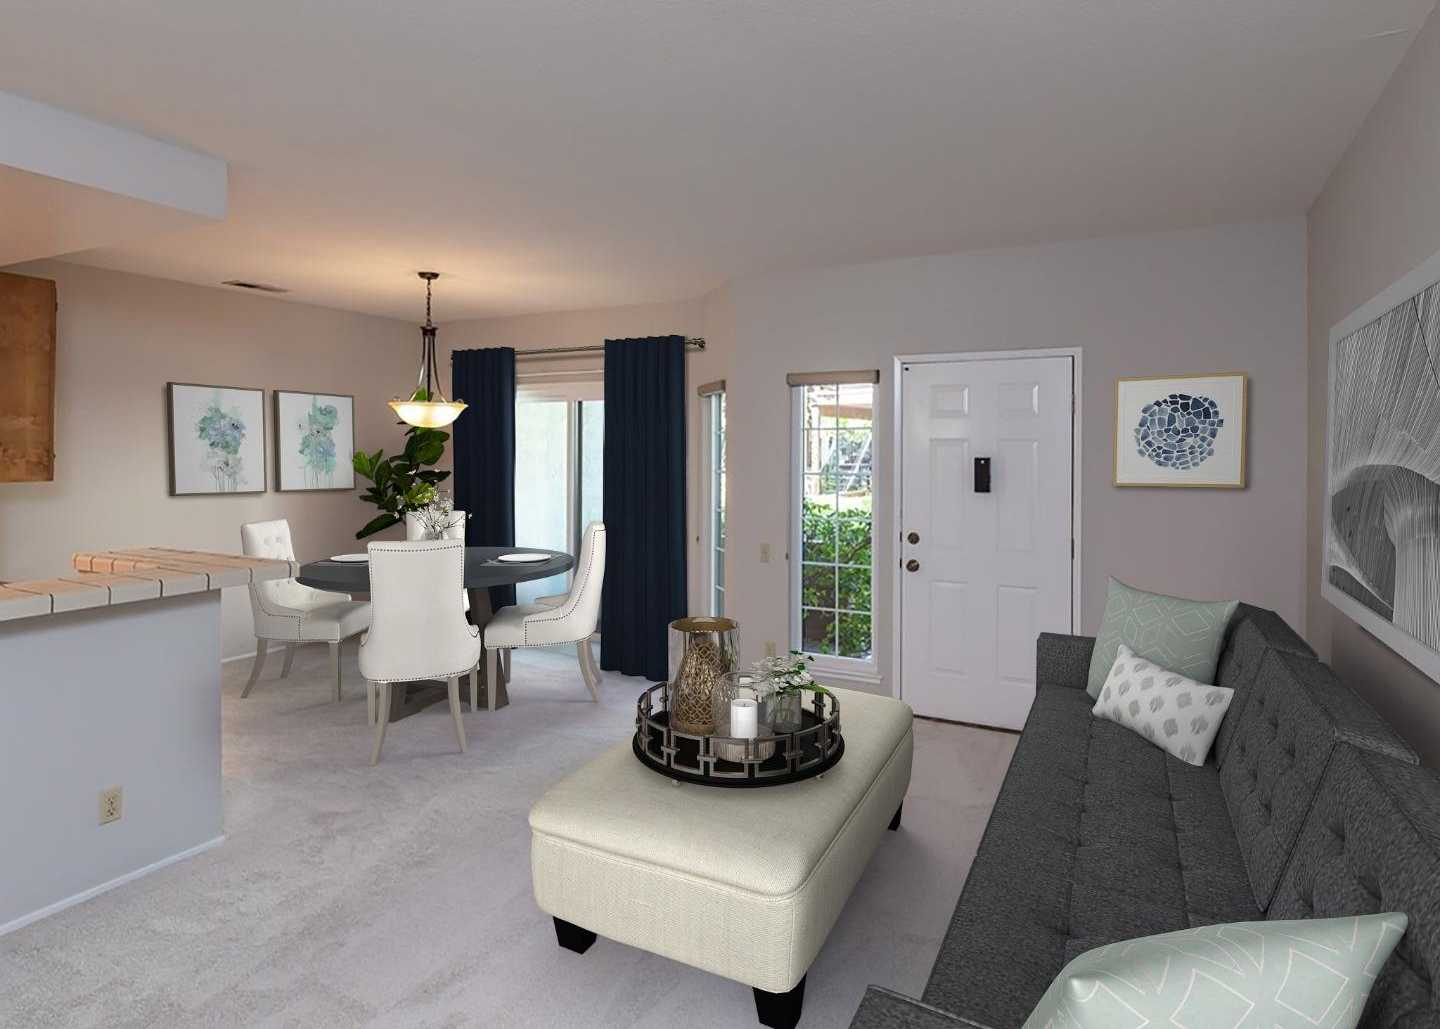 $895,000 - 2Br/2Ba -  for Sale in Sunnyvale